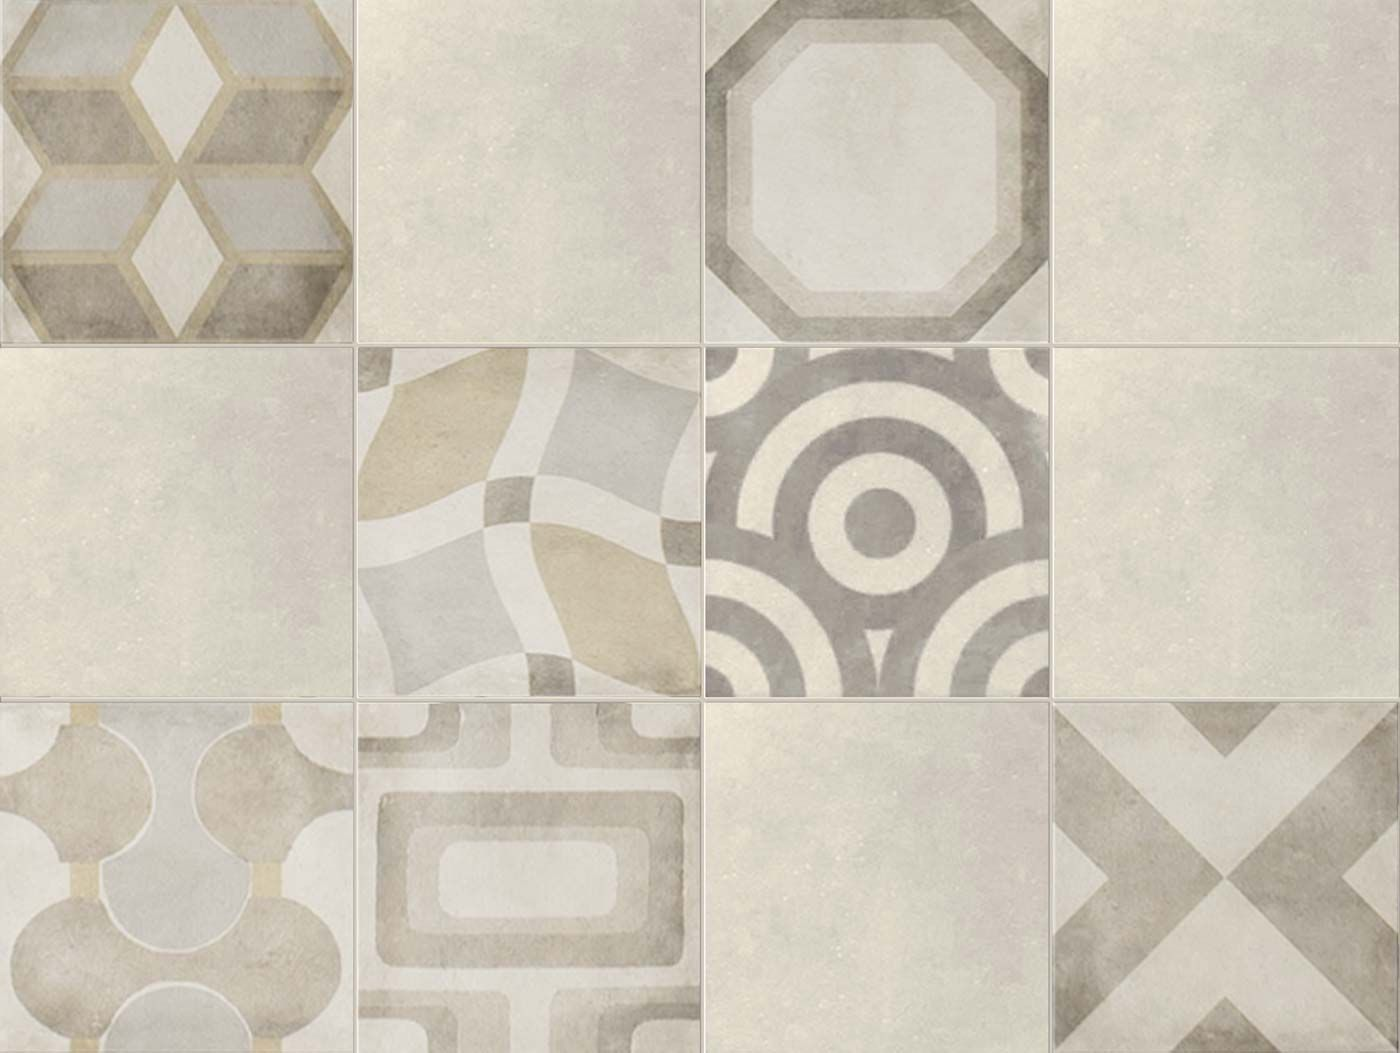 Wall Tiles Decor Awesome Pinf B On Pllaka  Pinterest  Sitting Rooms Wall Tiles And Inspiration Design